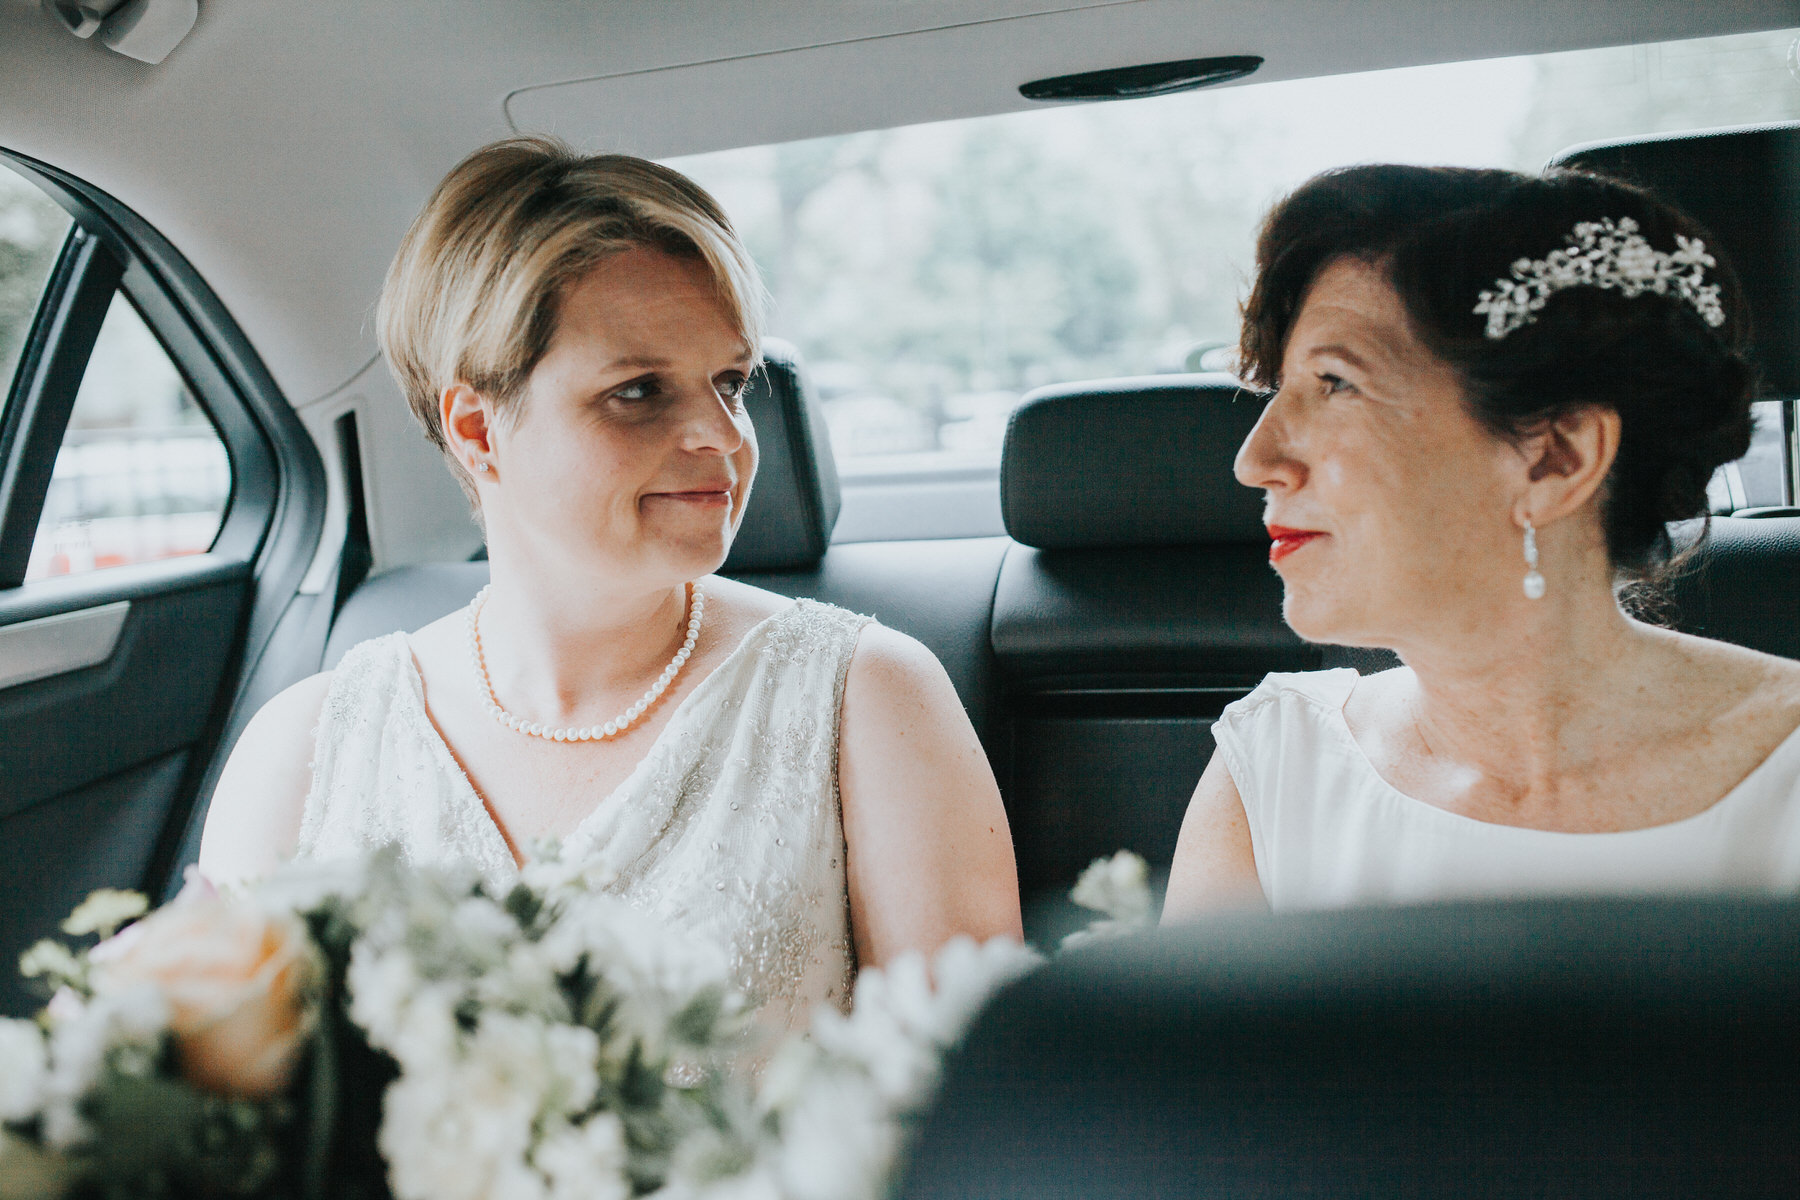 75 Islington London two brides head to ceremony in car.jpg